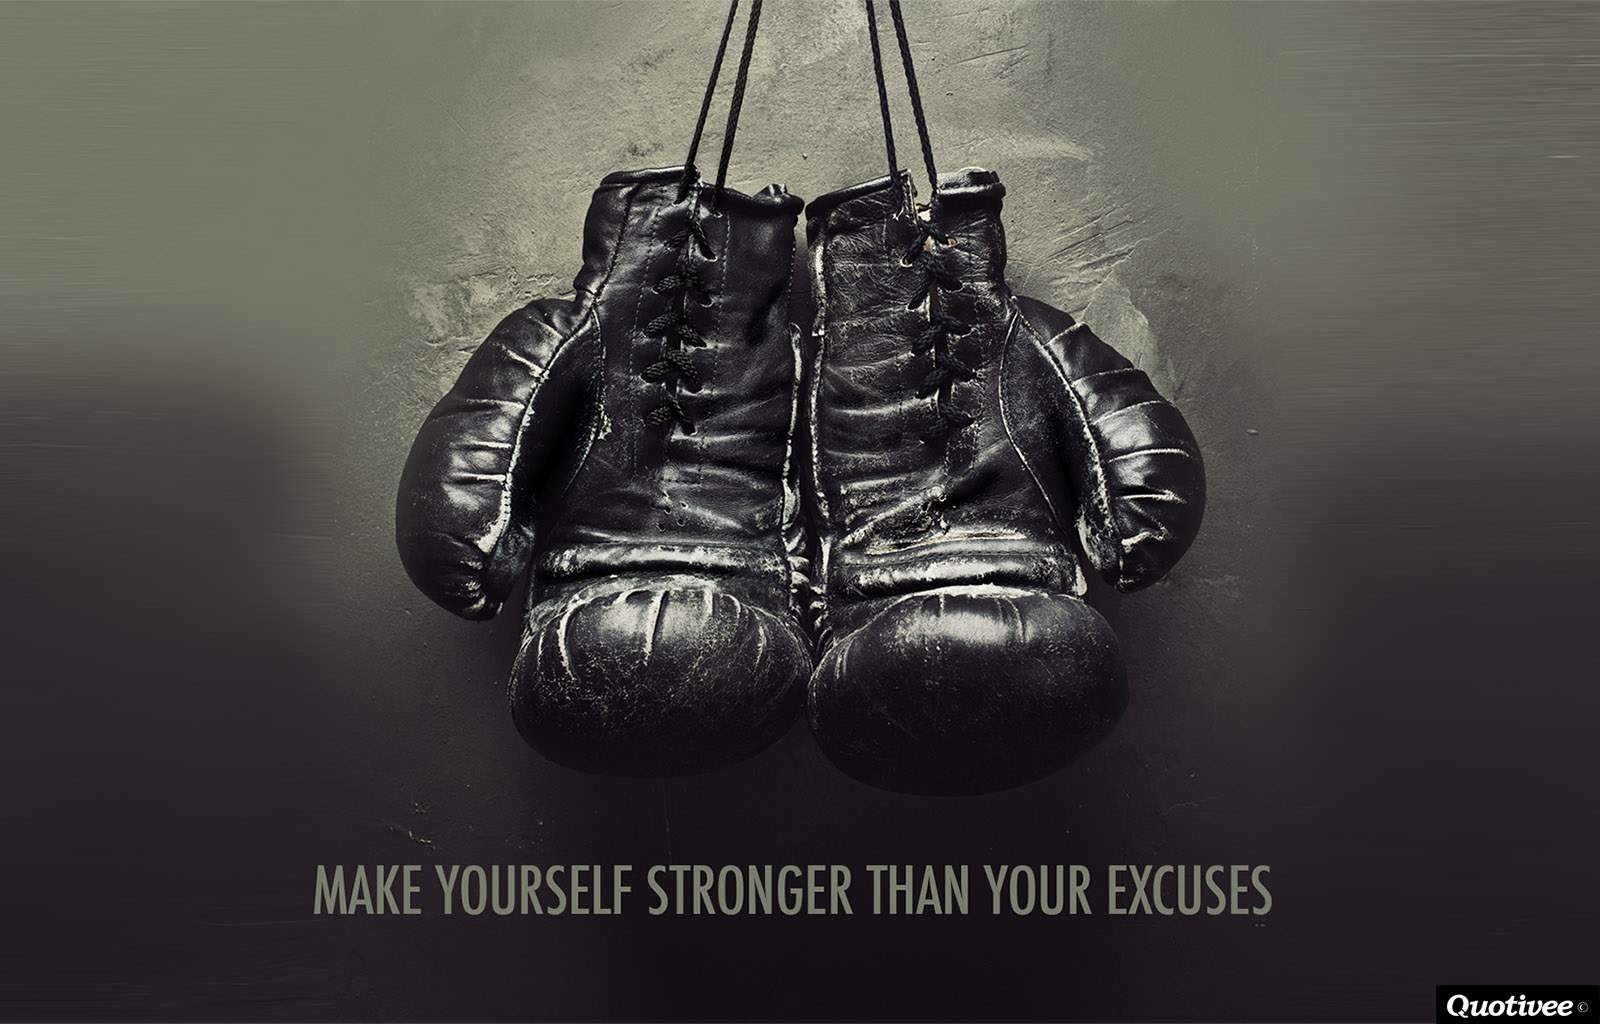 Inspirational Quotes Wallpaper Download Make Yourself Stronger Than Your Excuses Inspirational